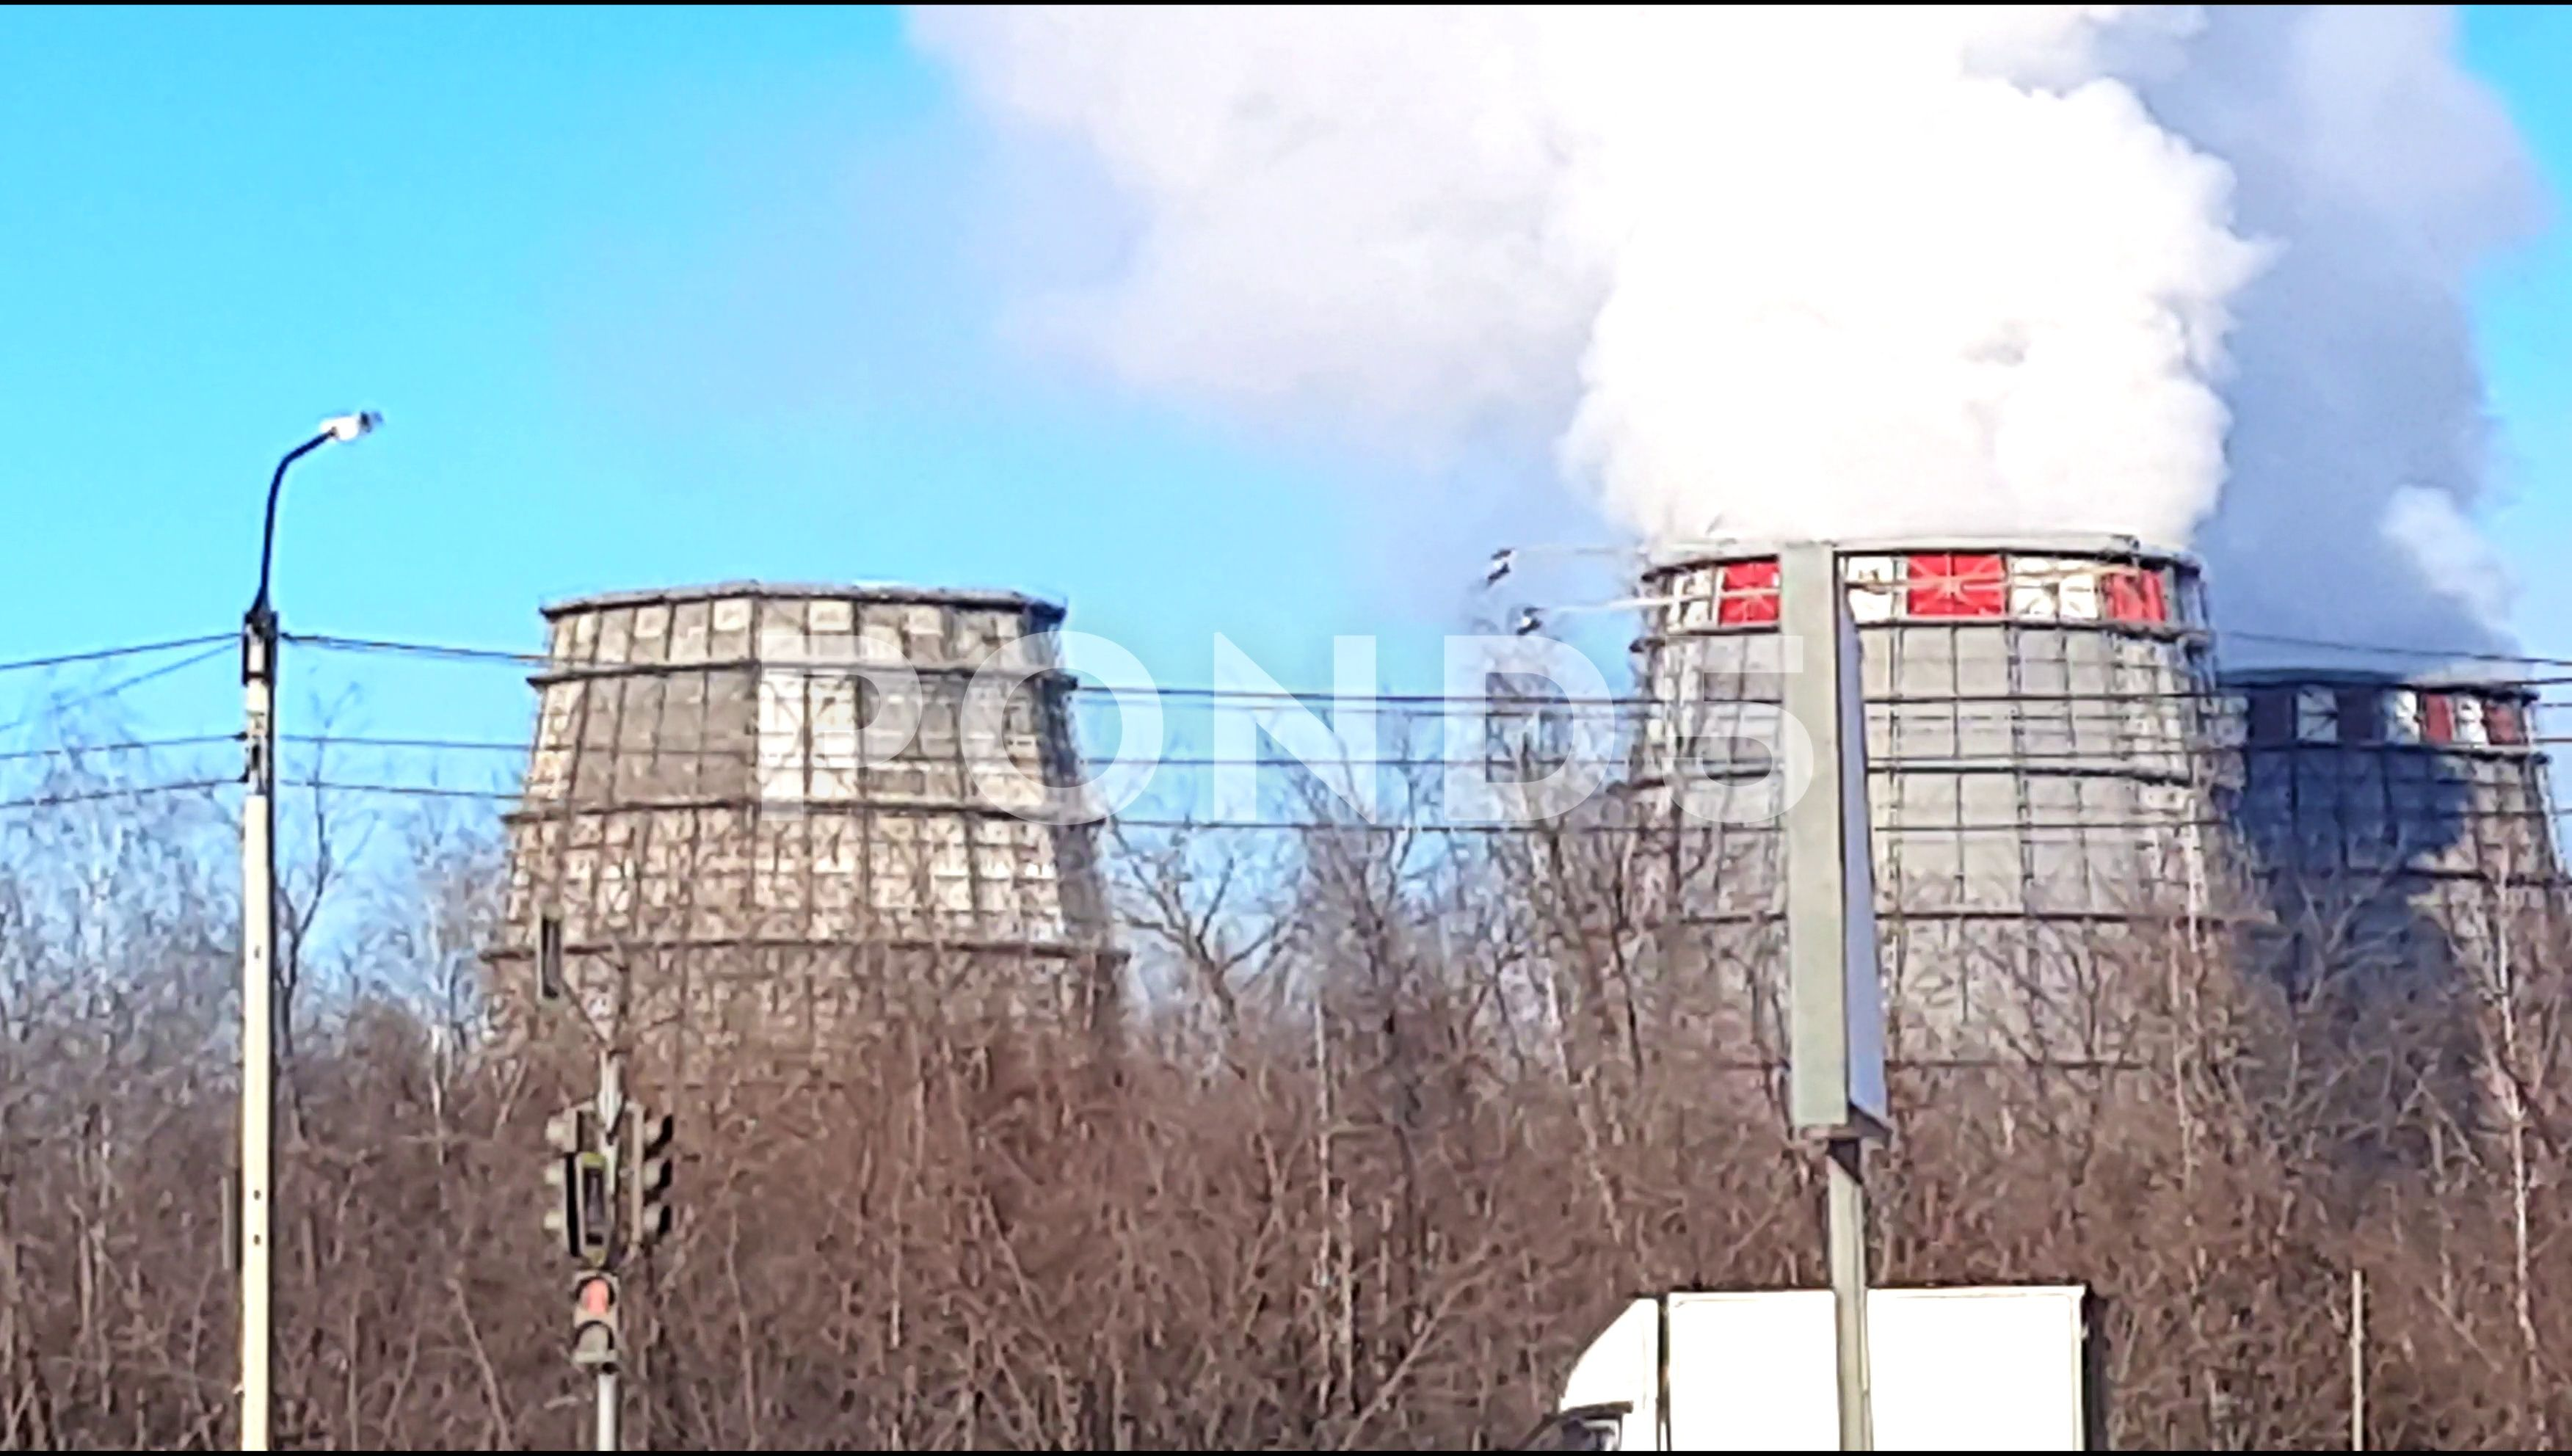 Industrial Zone With Large Pipes Cooling Towers With Puffs Of